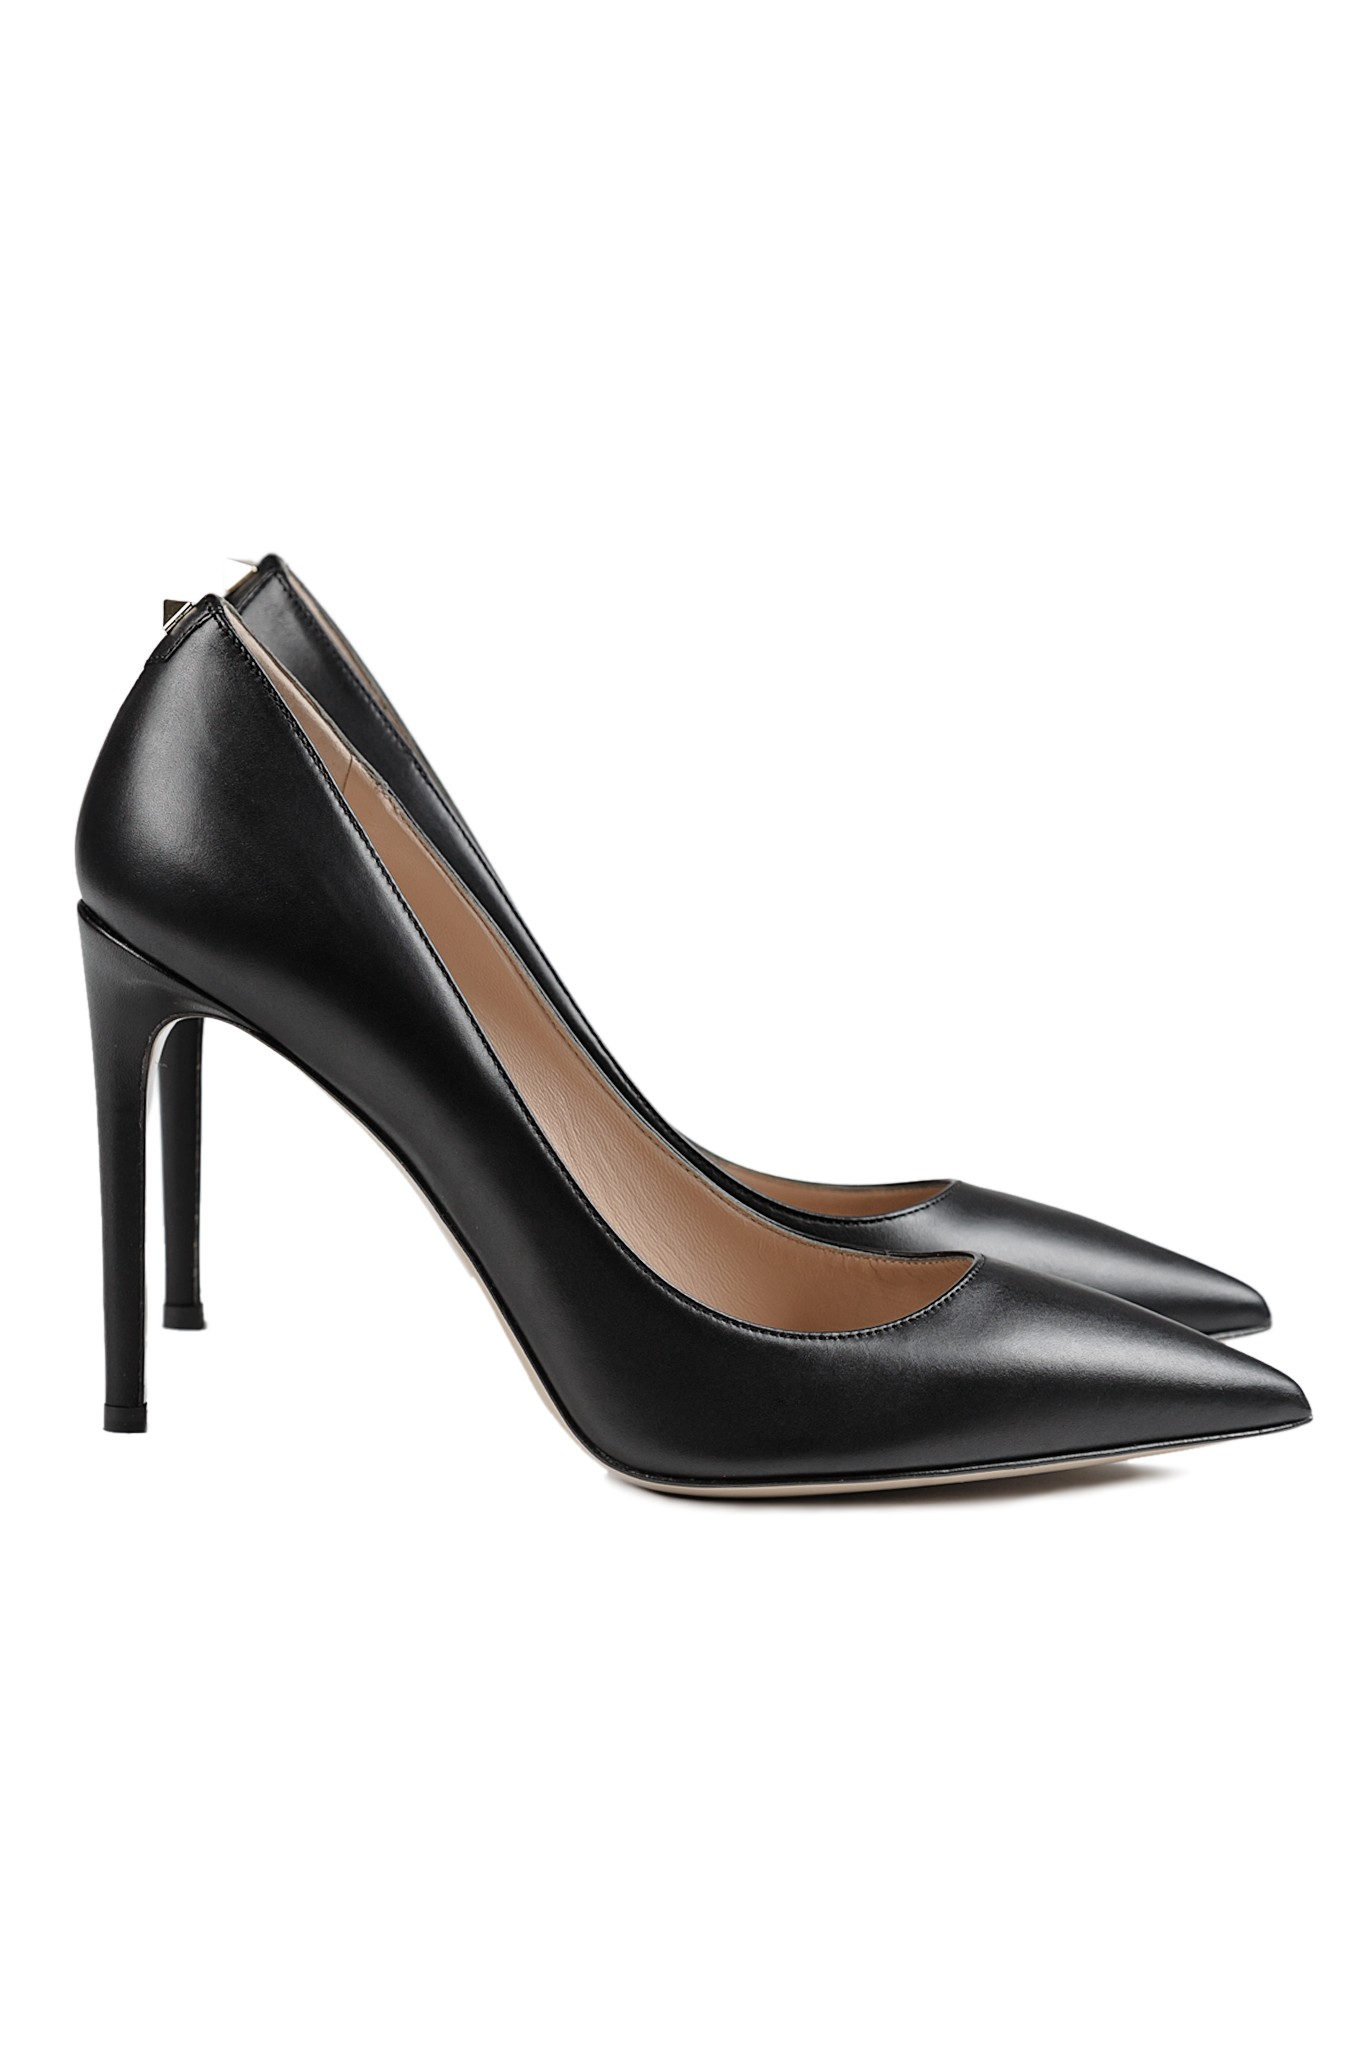 Rockport W Tm75mmpth Plain Pump Black Patent (10 AU) for - Compare prices of products in Shoes from Online Stores in Australia. Save with mediacrucialxa.cf!